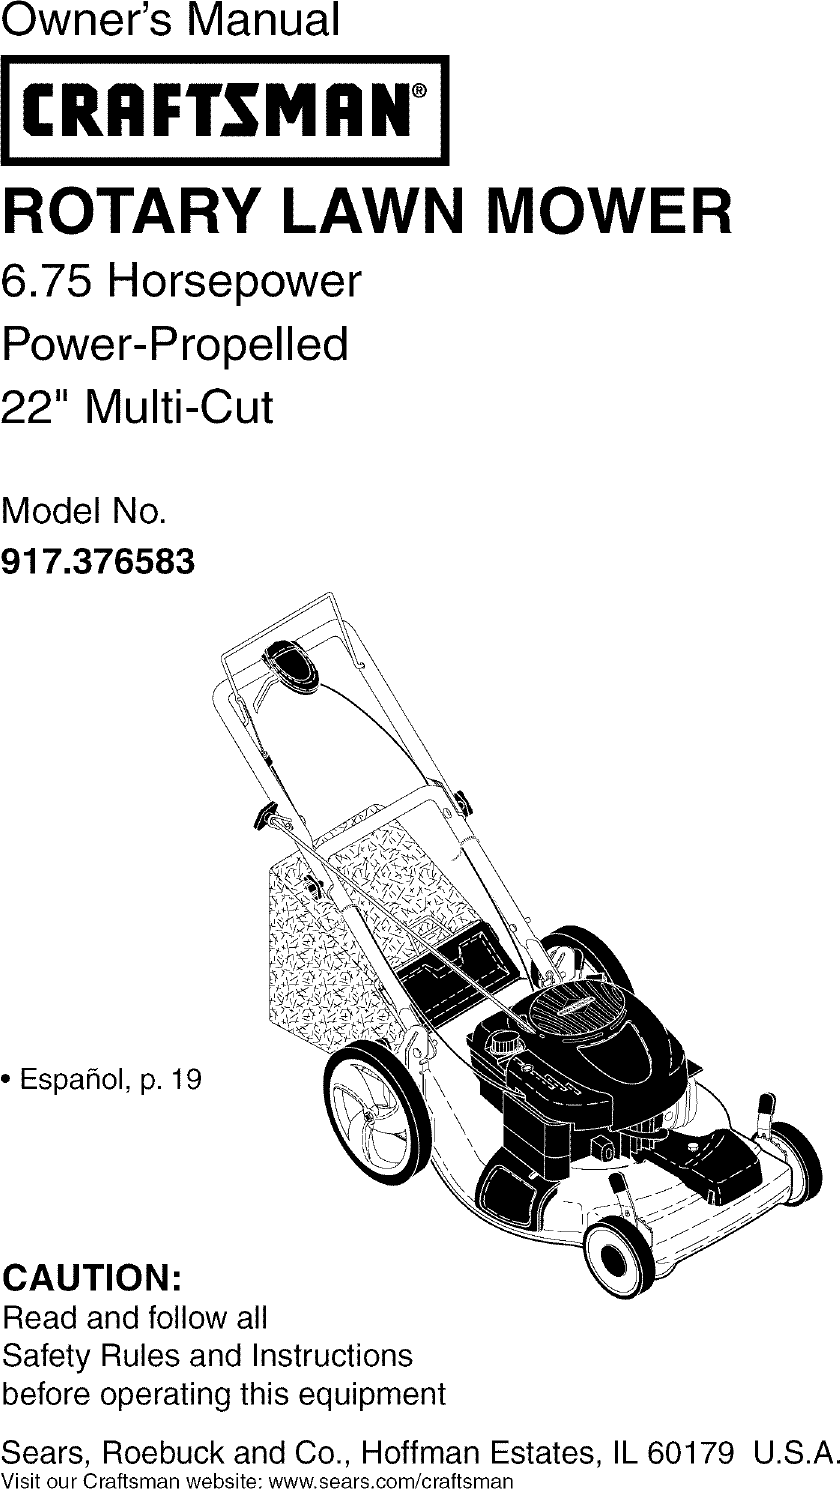 Craftsman 917376583 User Manual ROTARY MOWER Manuals And